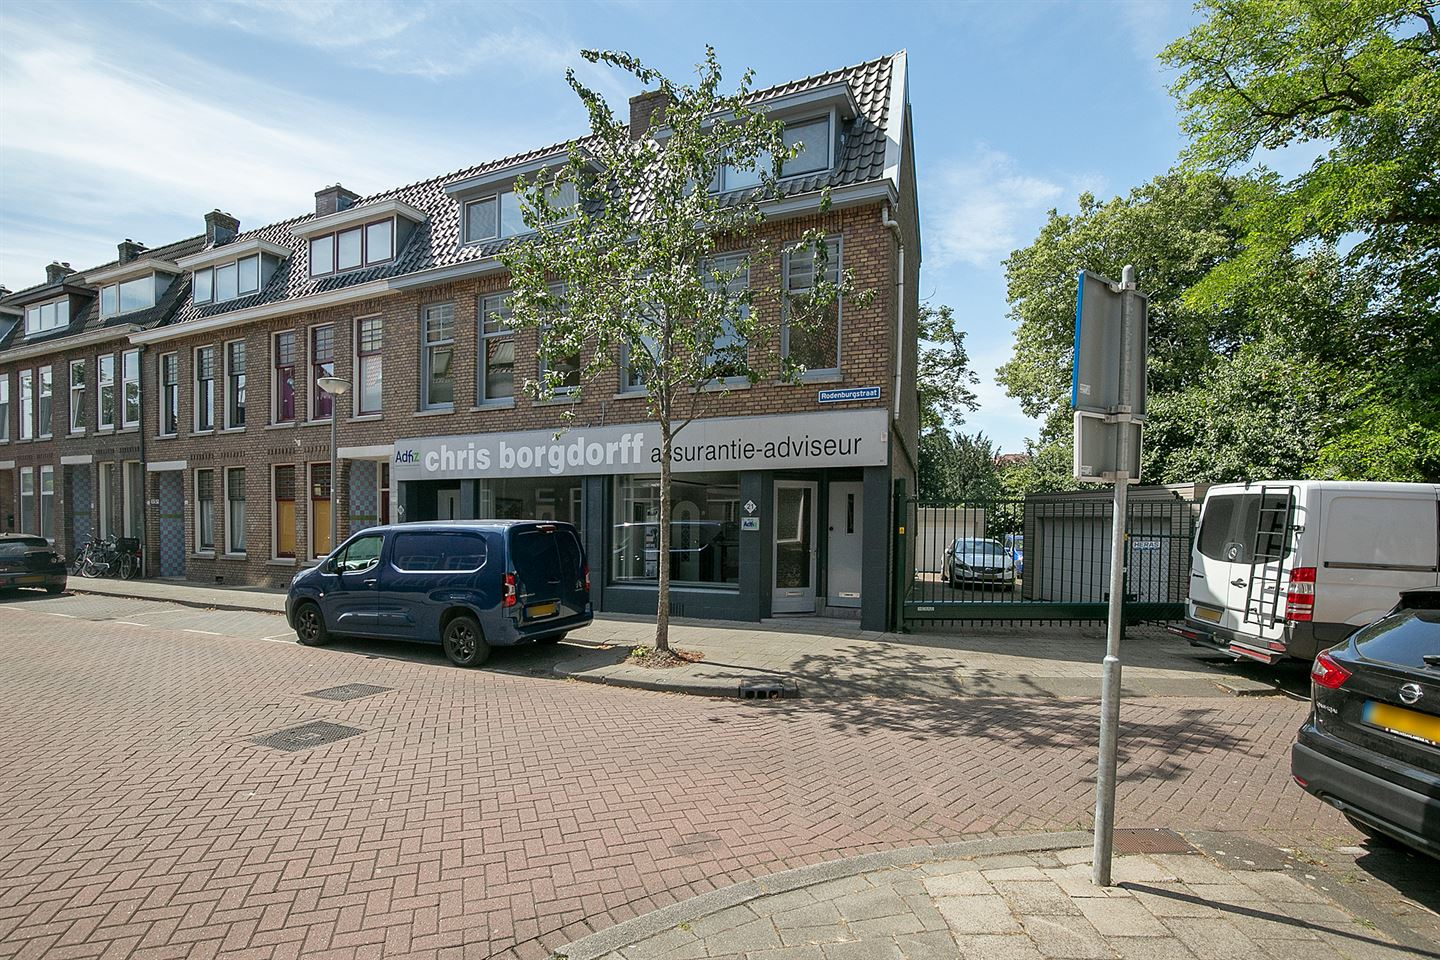 View photo 4 of Rodenburgstraat 19 - 21